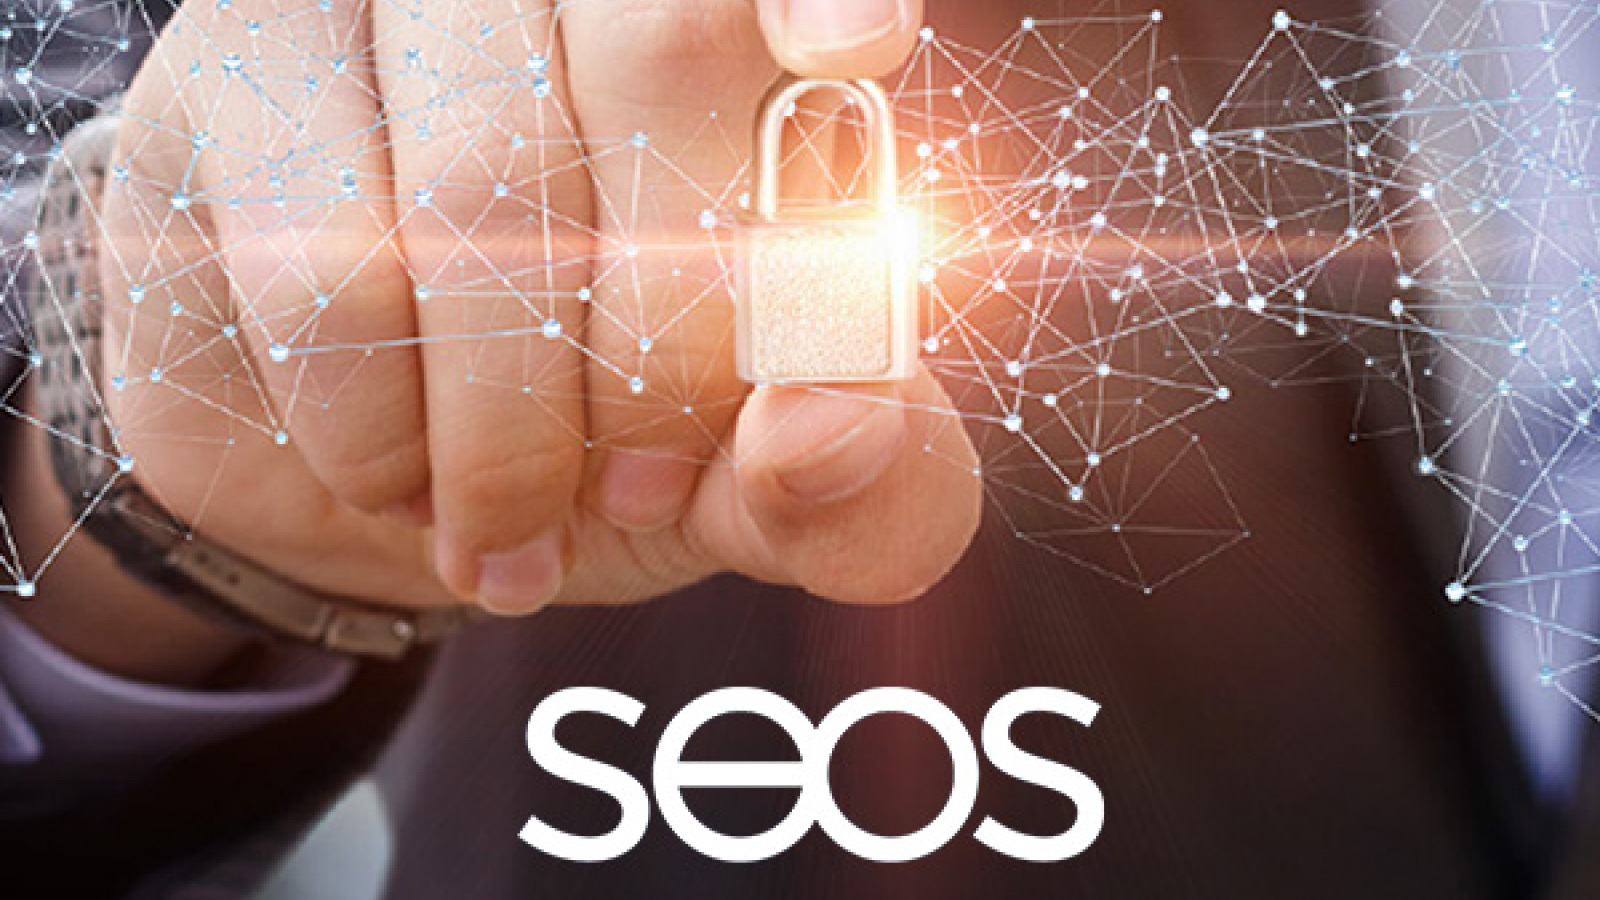 Mobile Access SEOS utilizes layered security